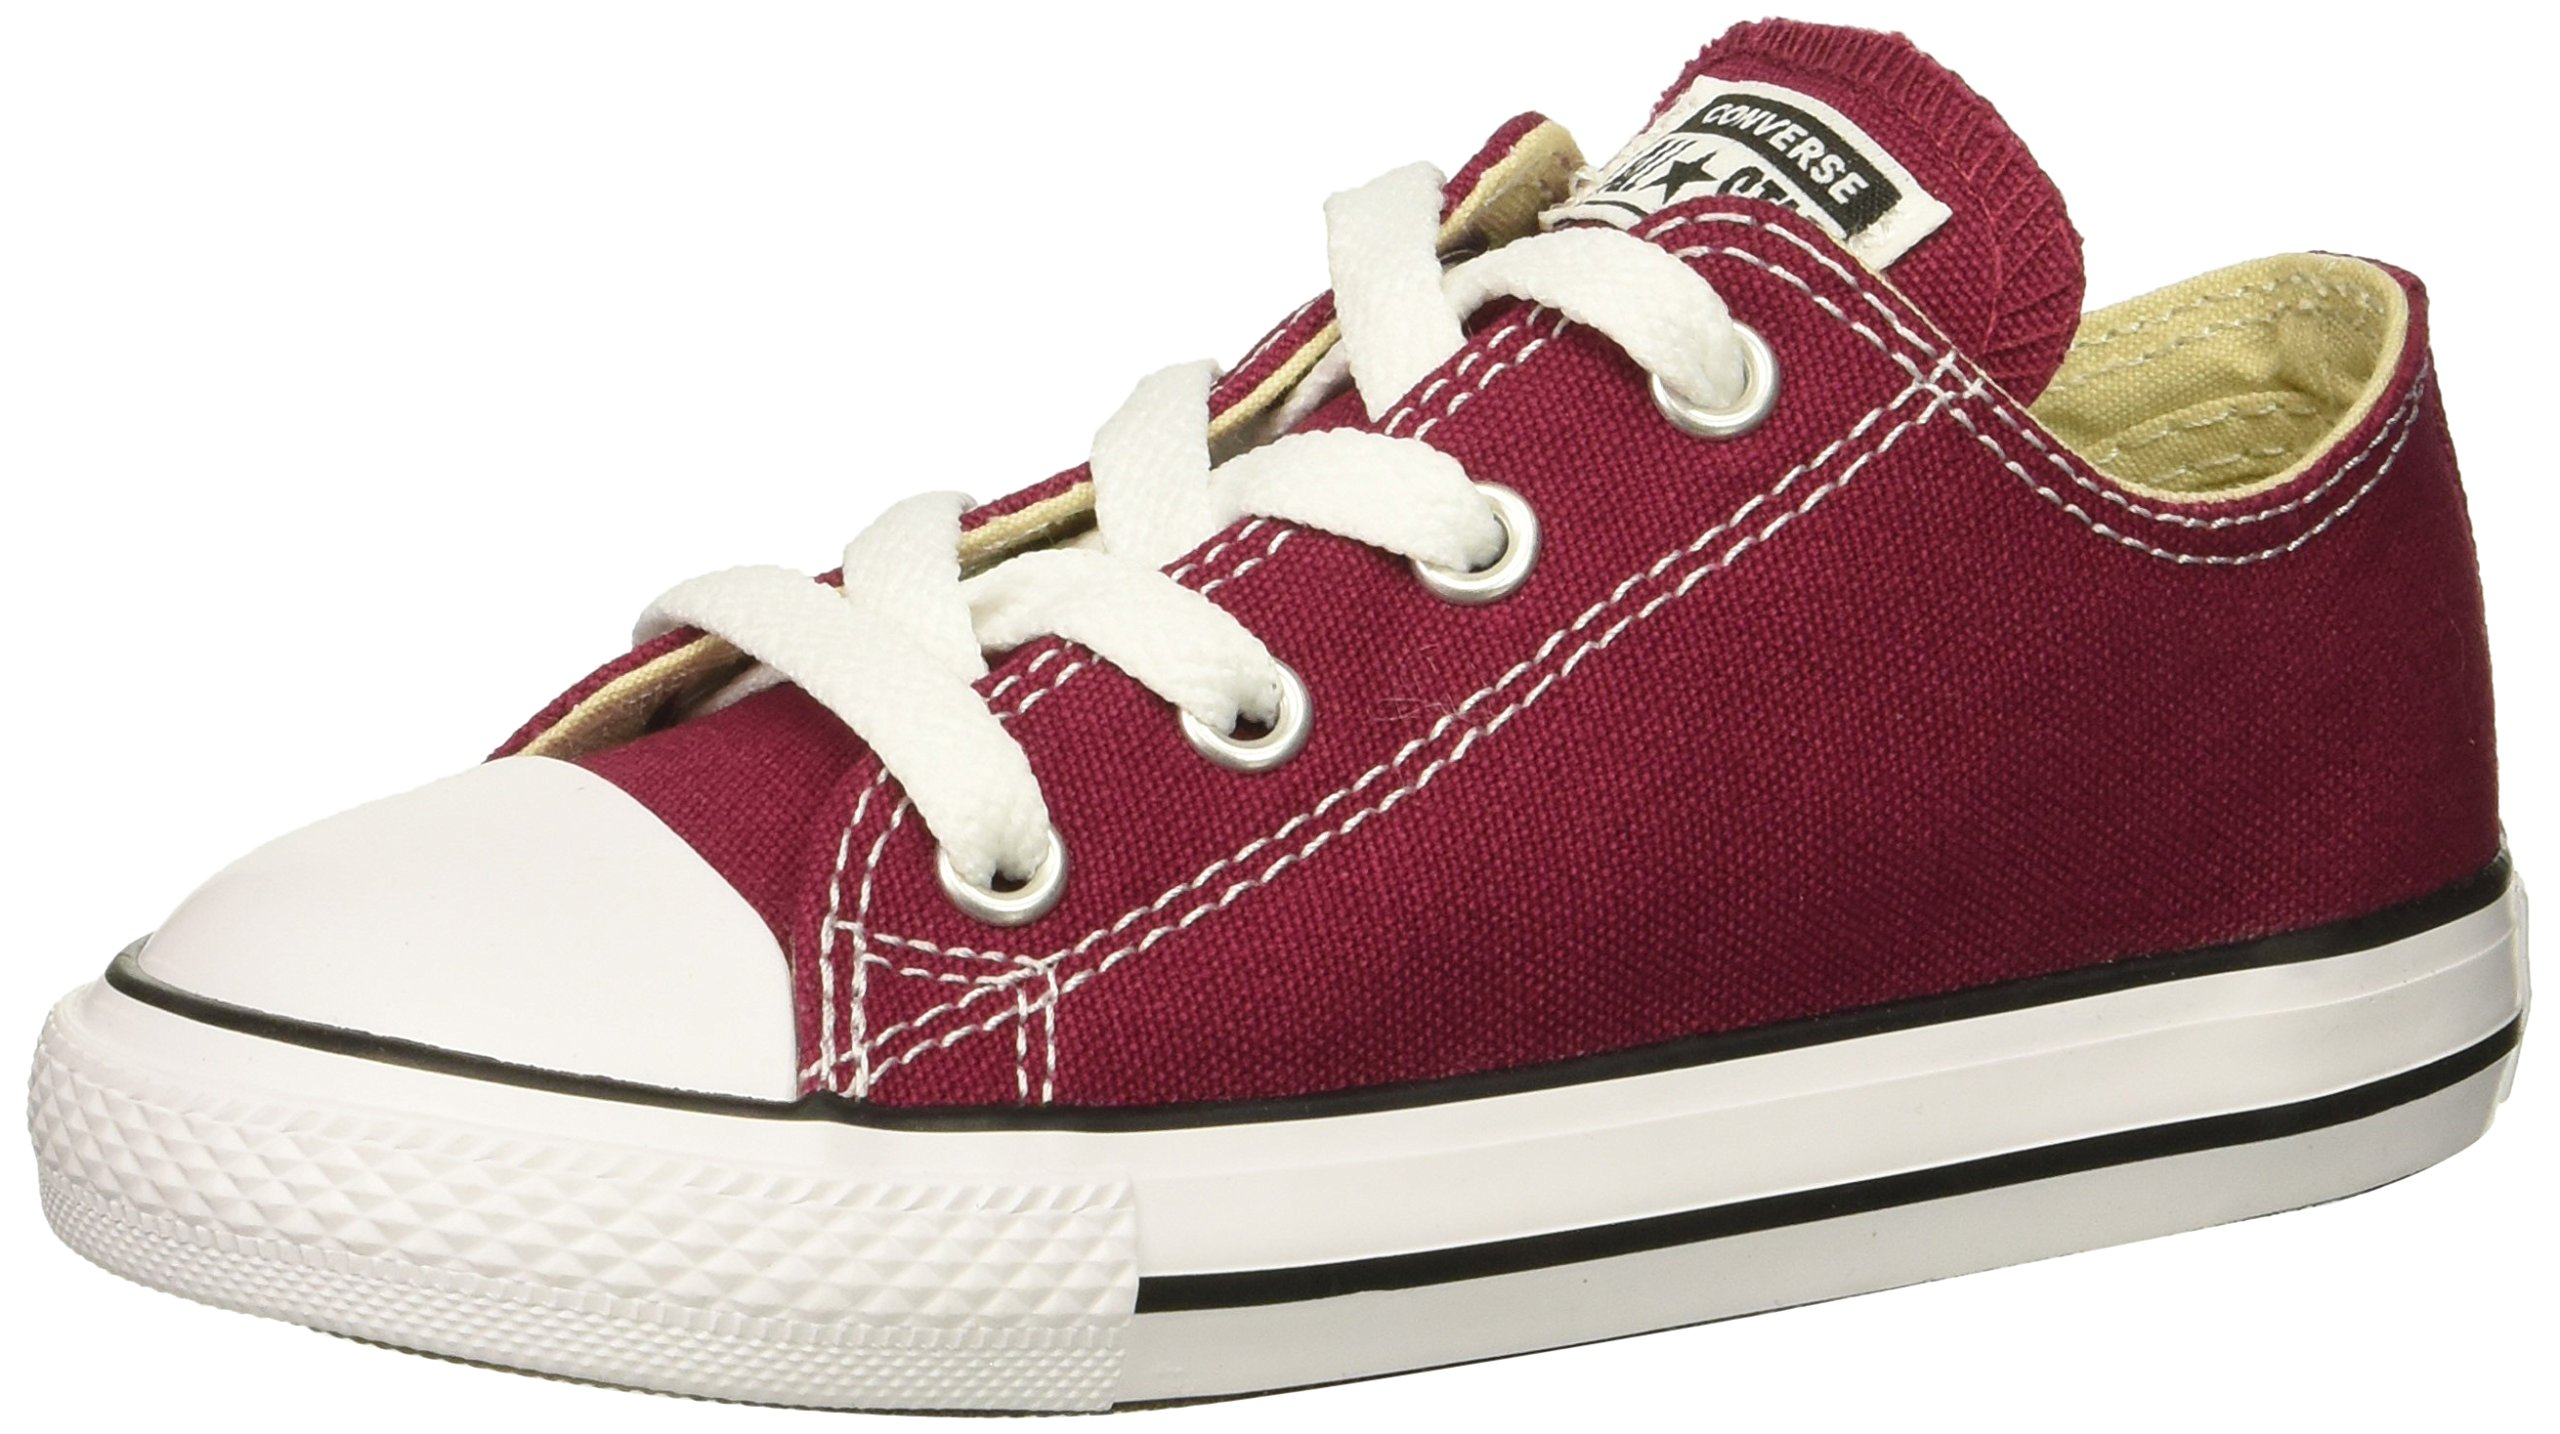 131fd65e9e8 Galleon - Converse Girls  Chuck Taylor All Star 2018 Seasonal Low Top  Sneaker